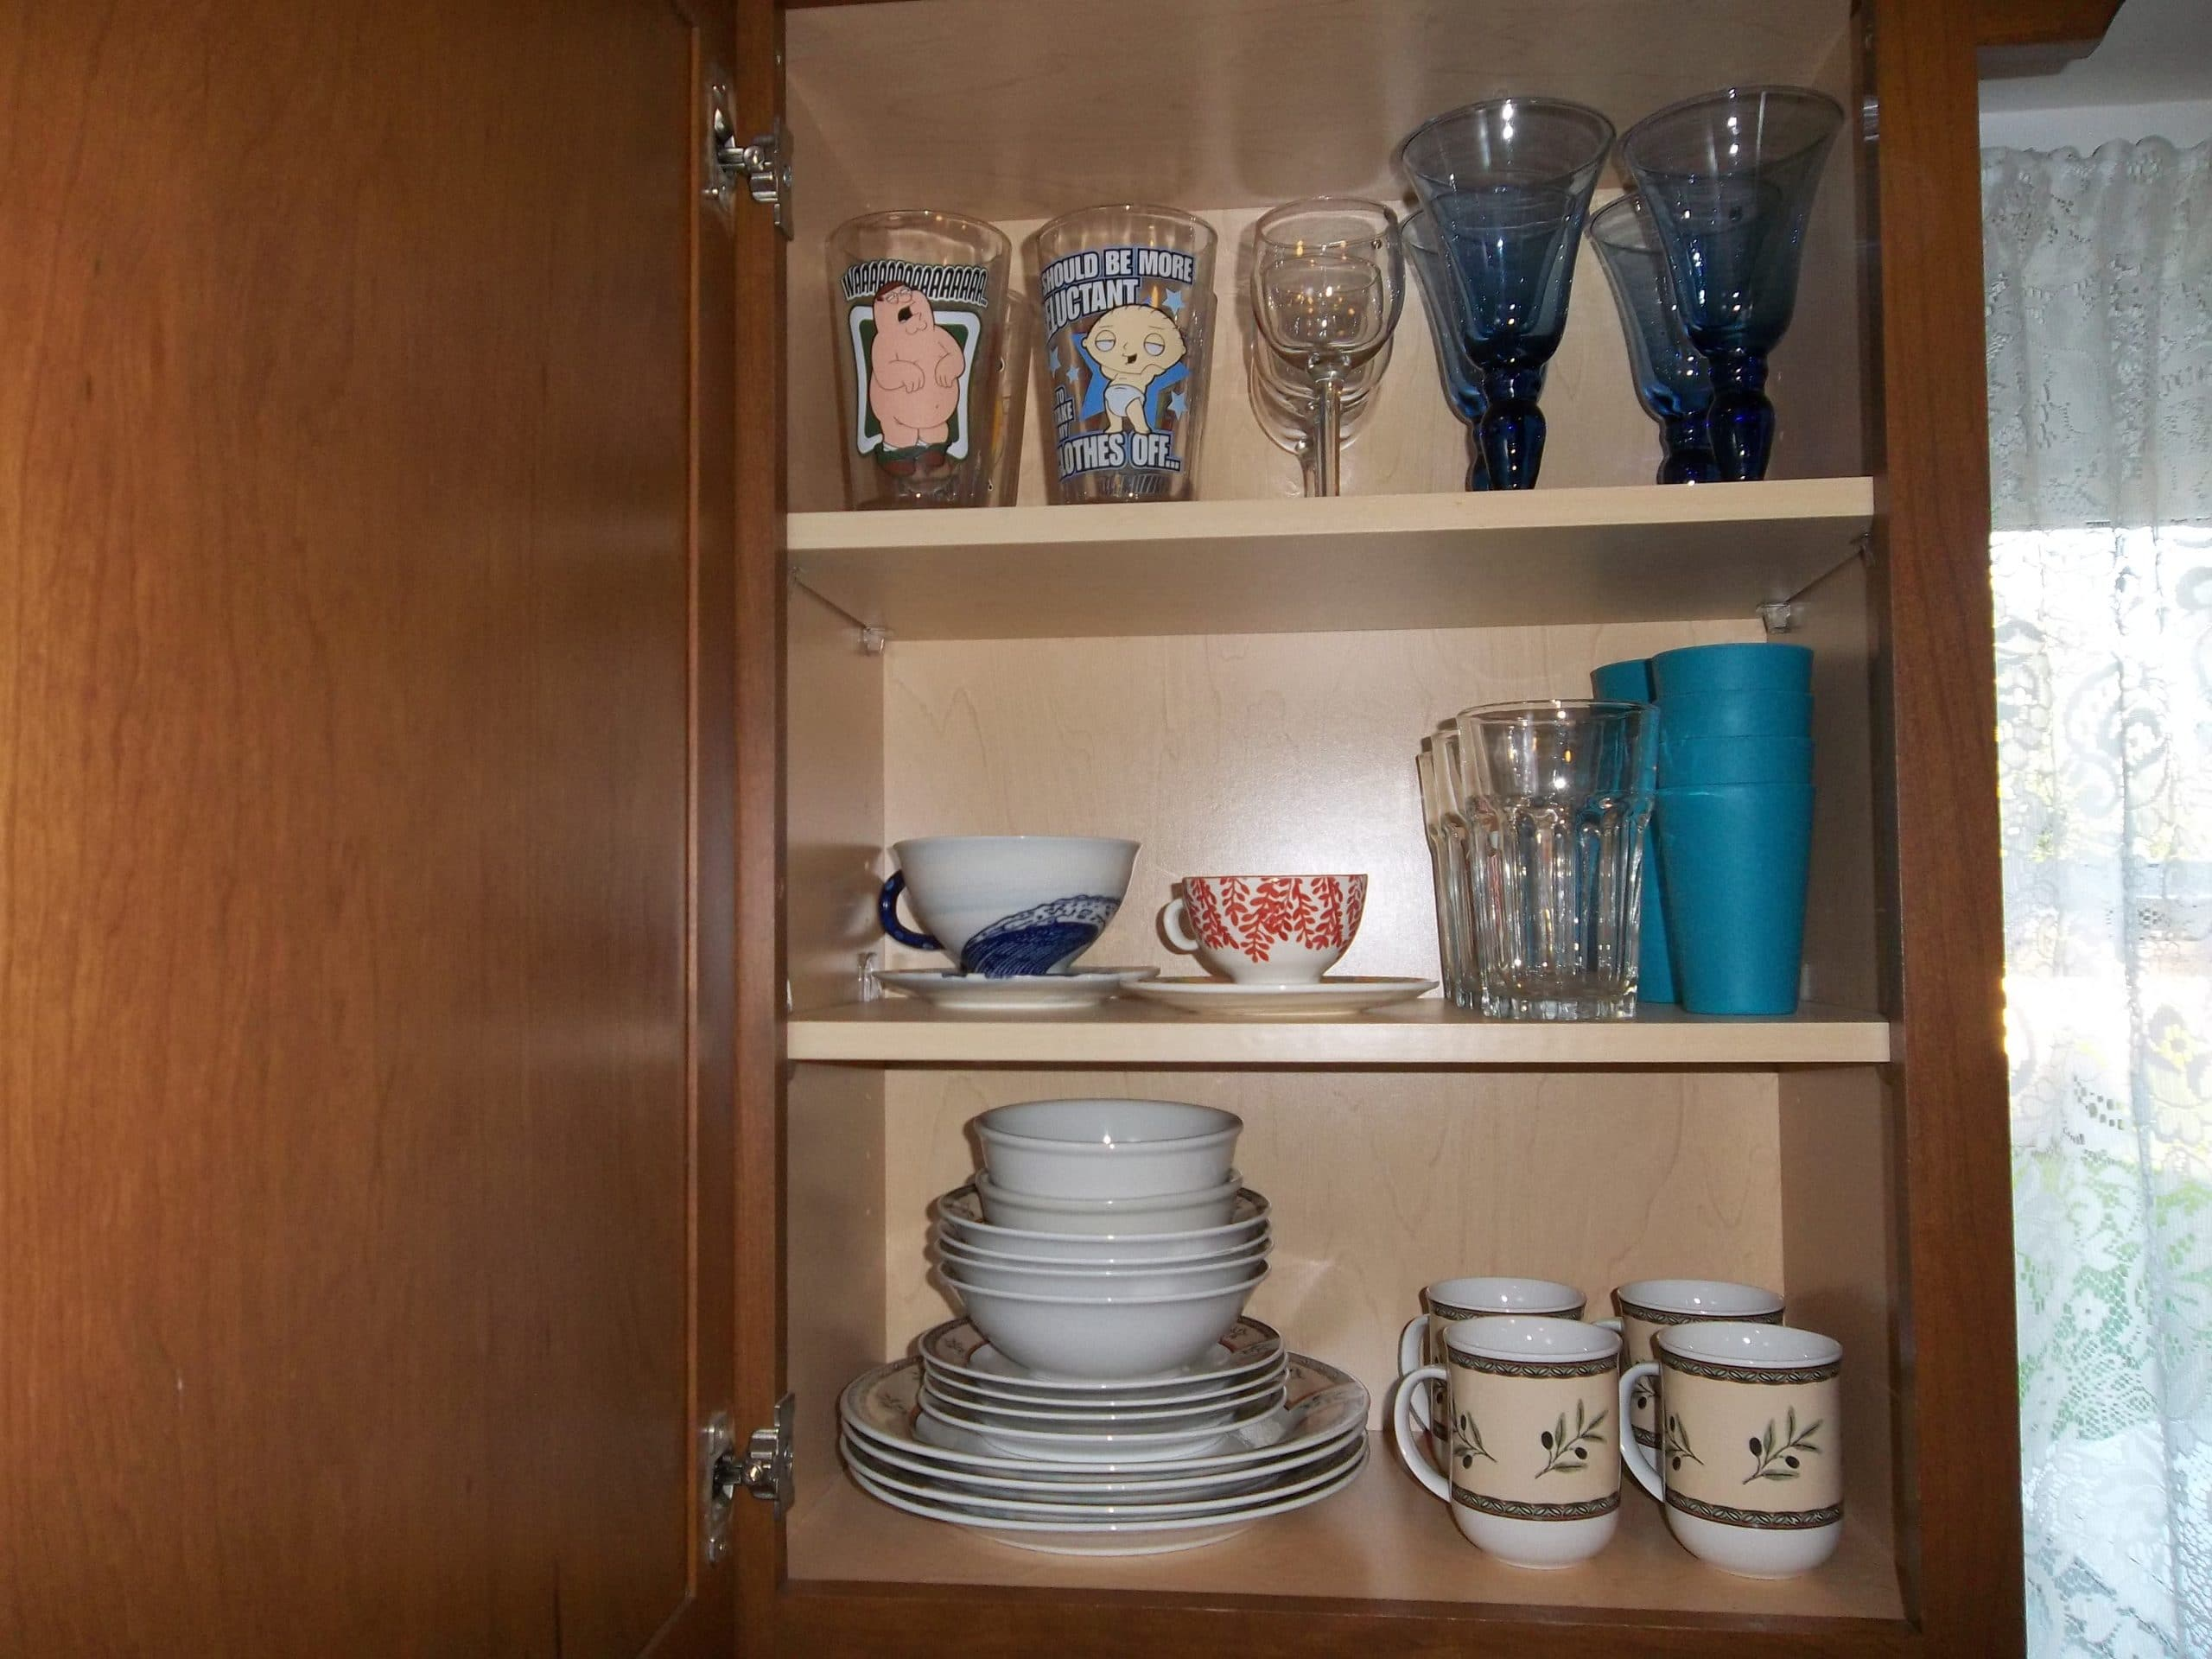 Awesome This Is My Dish Cabinet Arranged But Without The Organizer.